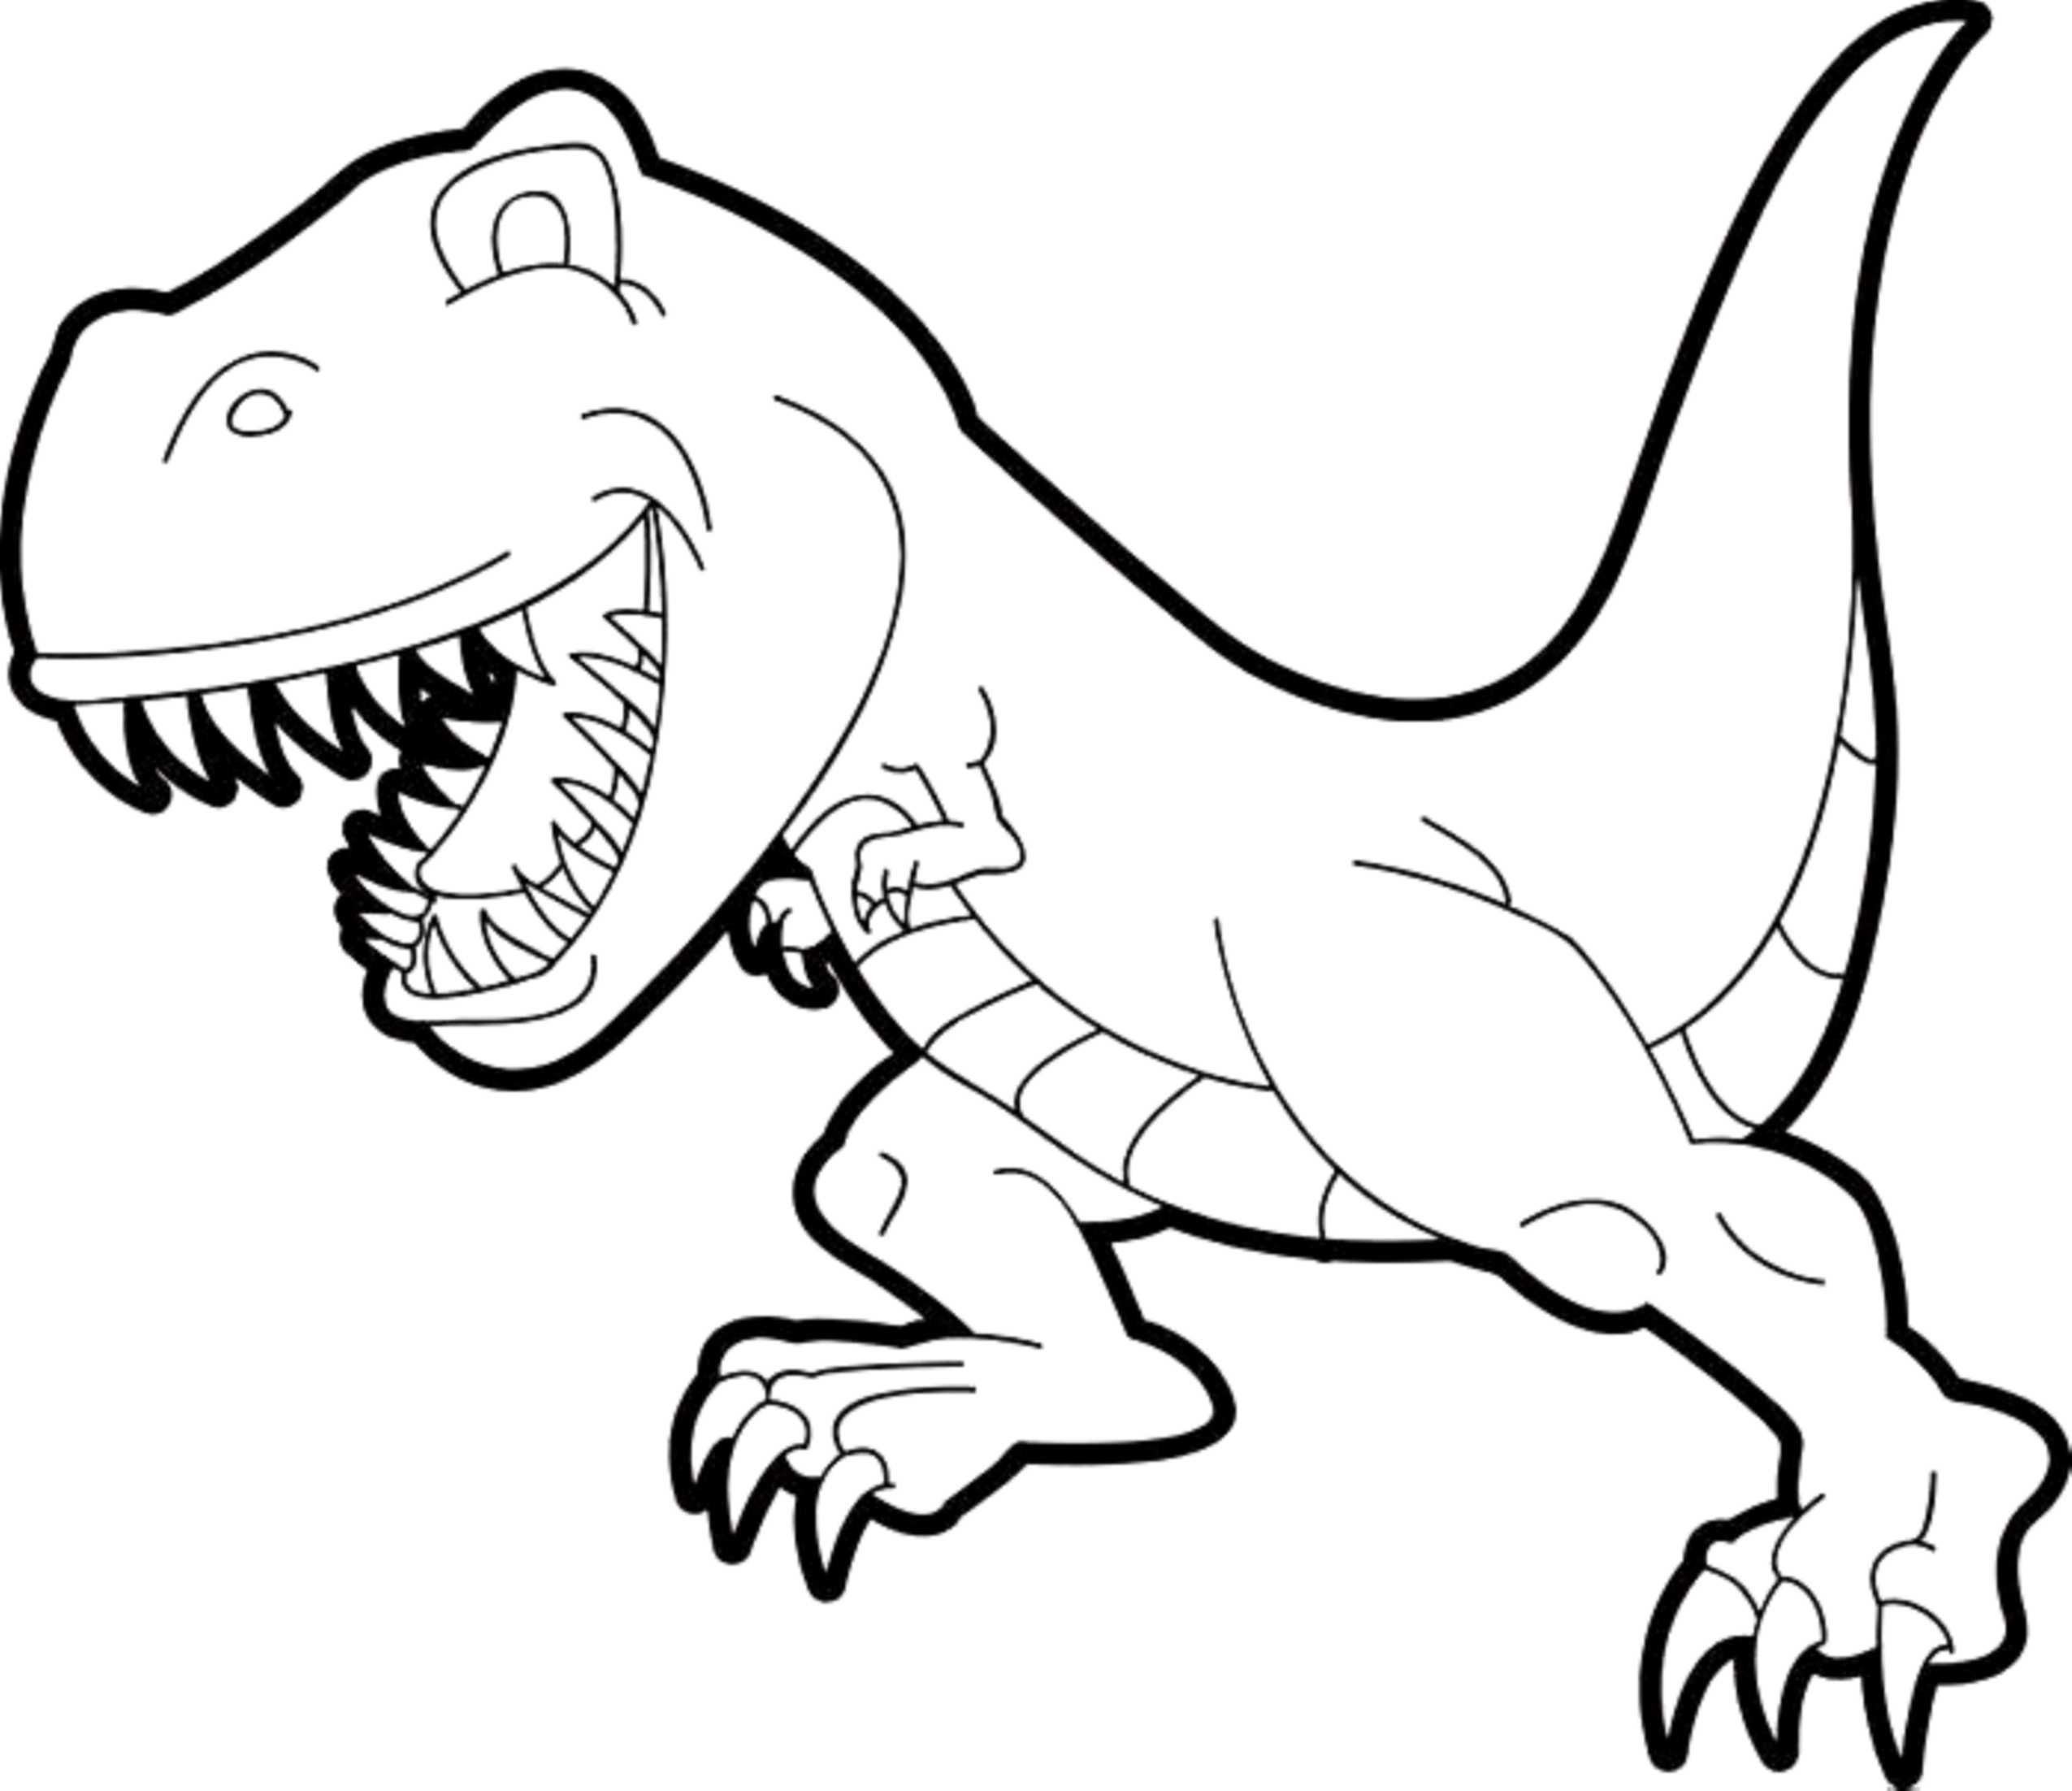 Simple T Rex Coloring Pages | Dinosaur Coloring Pages